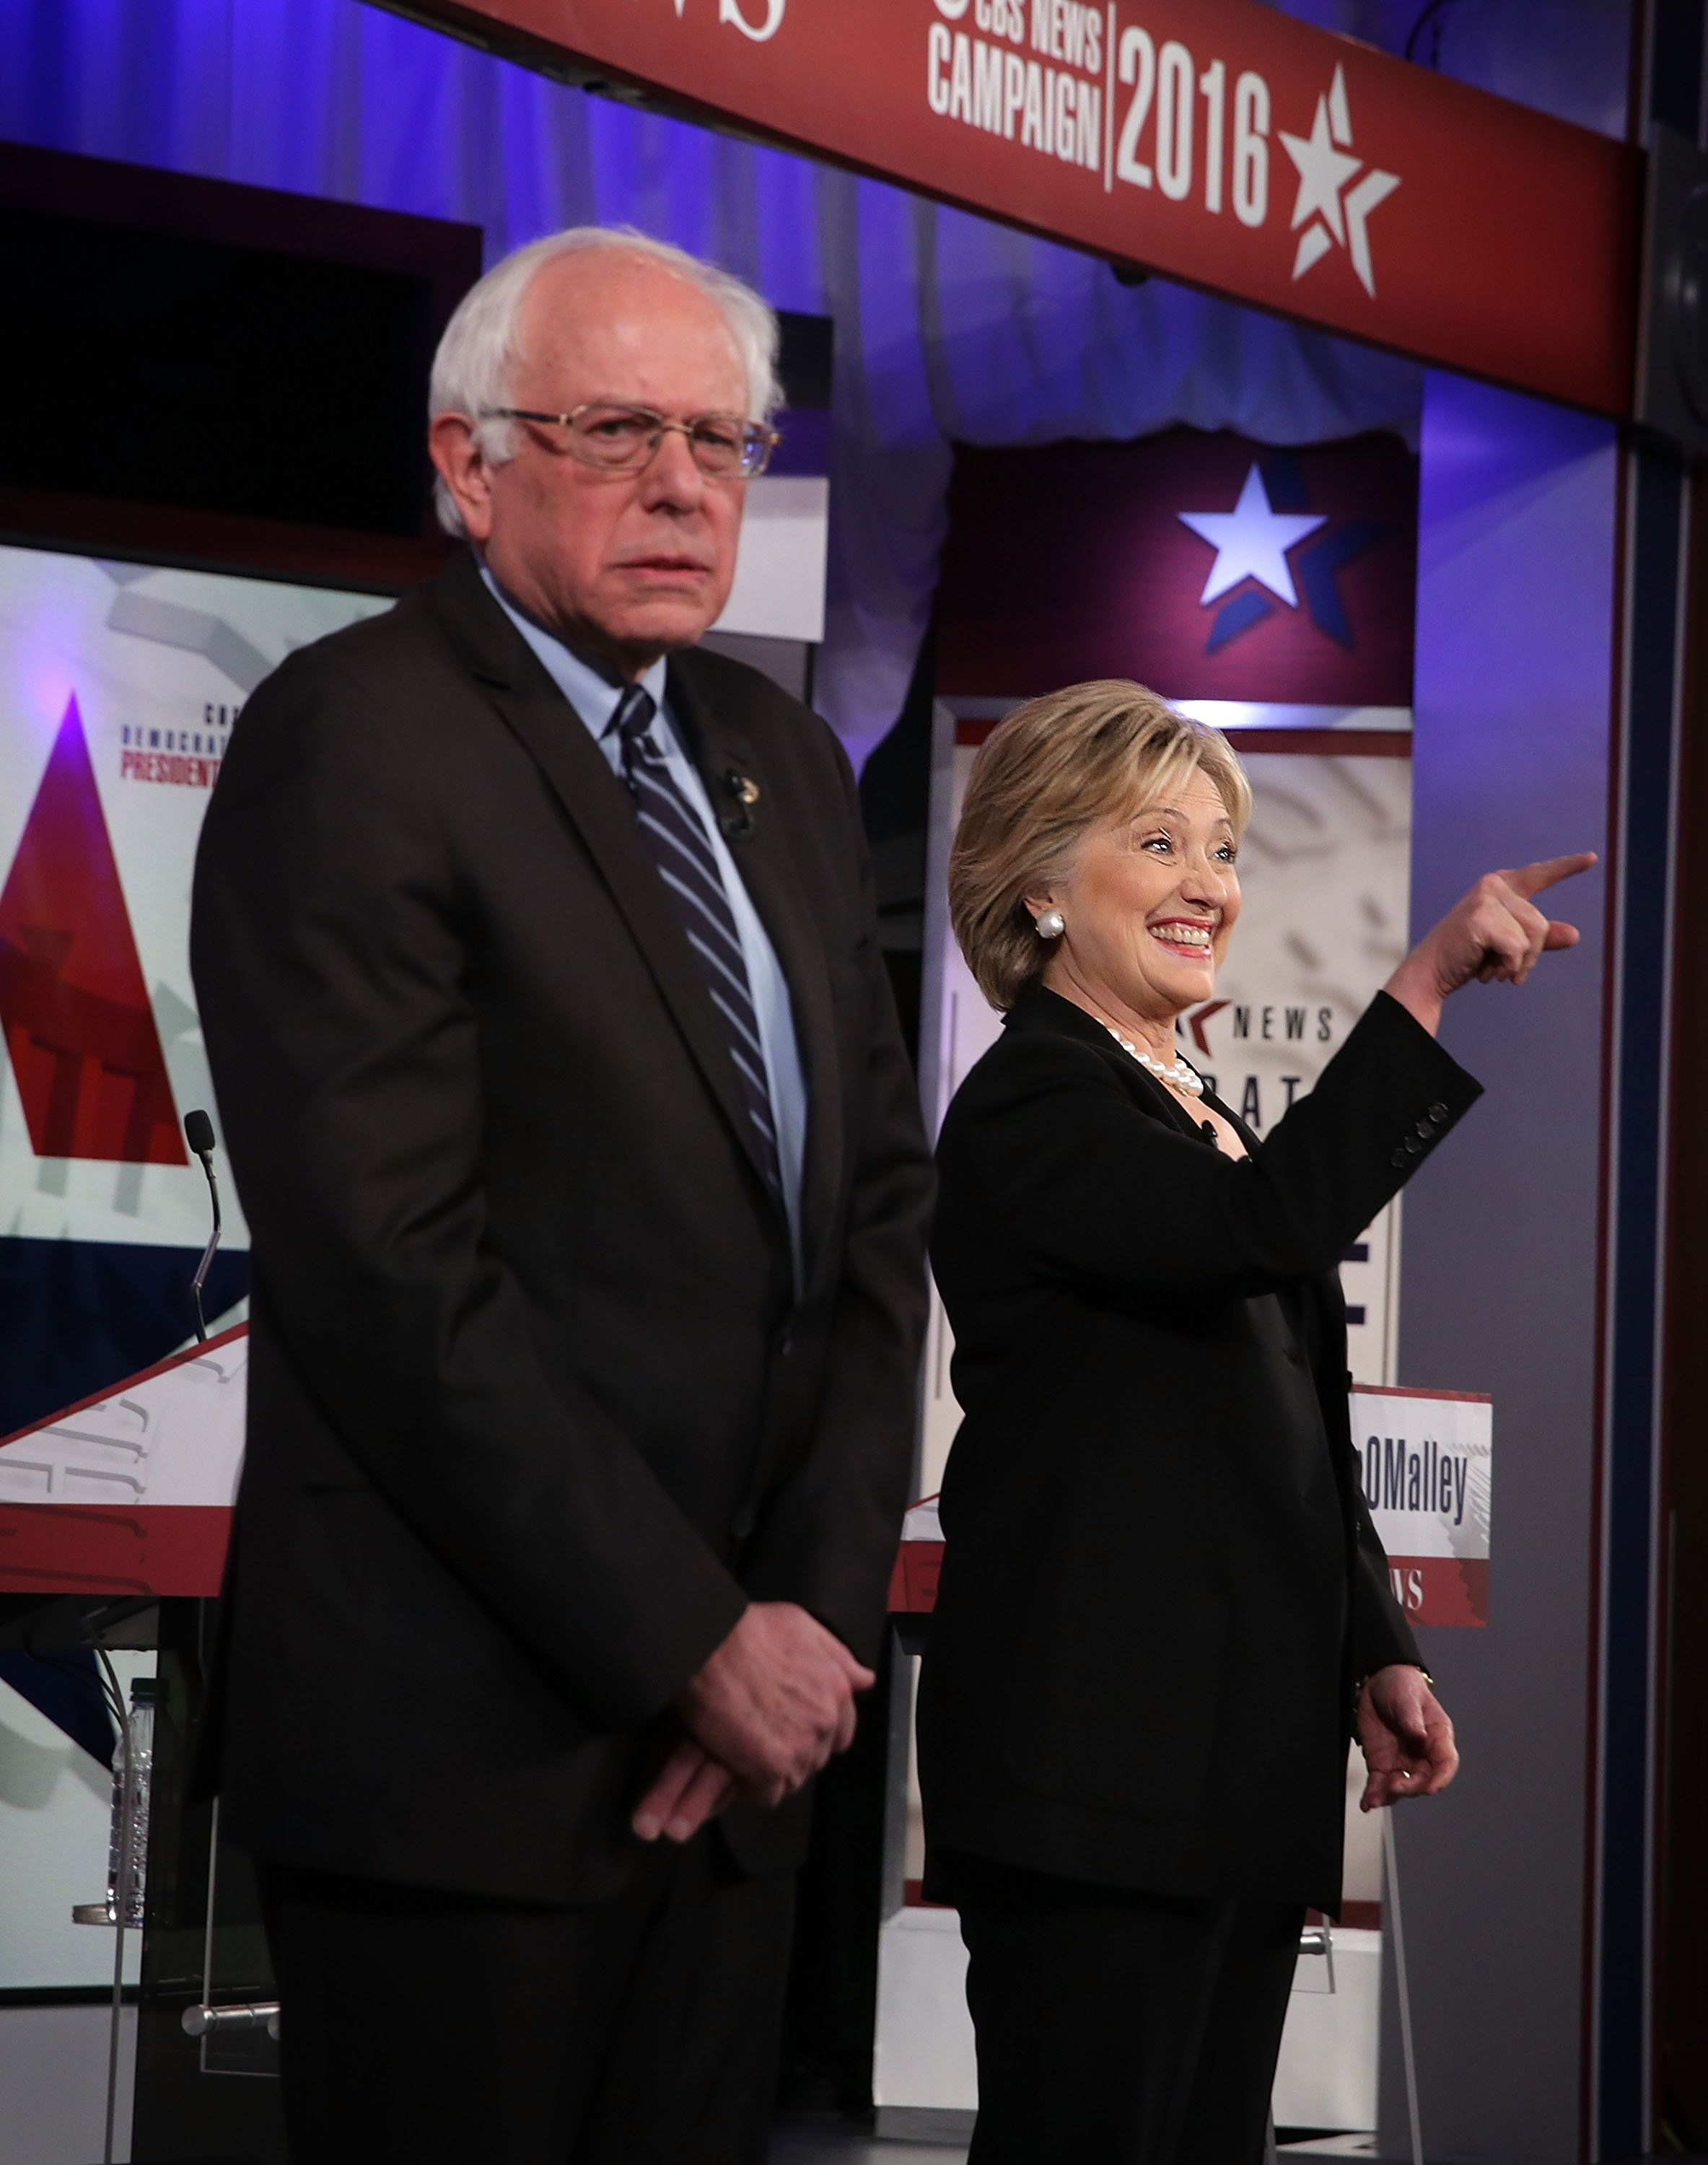 Democratic presidential candidates Sen. Bernie Sanders (I-Vt.) and Hillary Clinton stand on the stage prior to thepresi